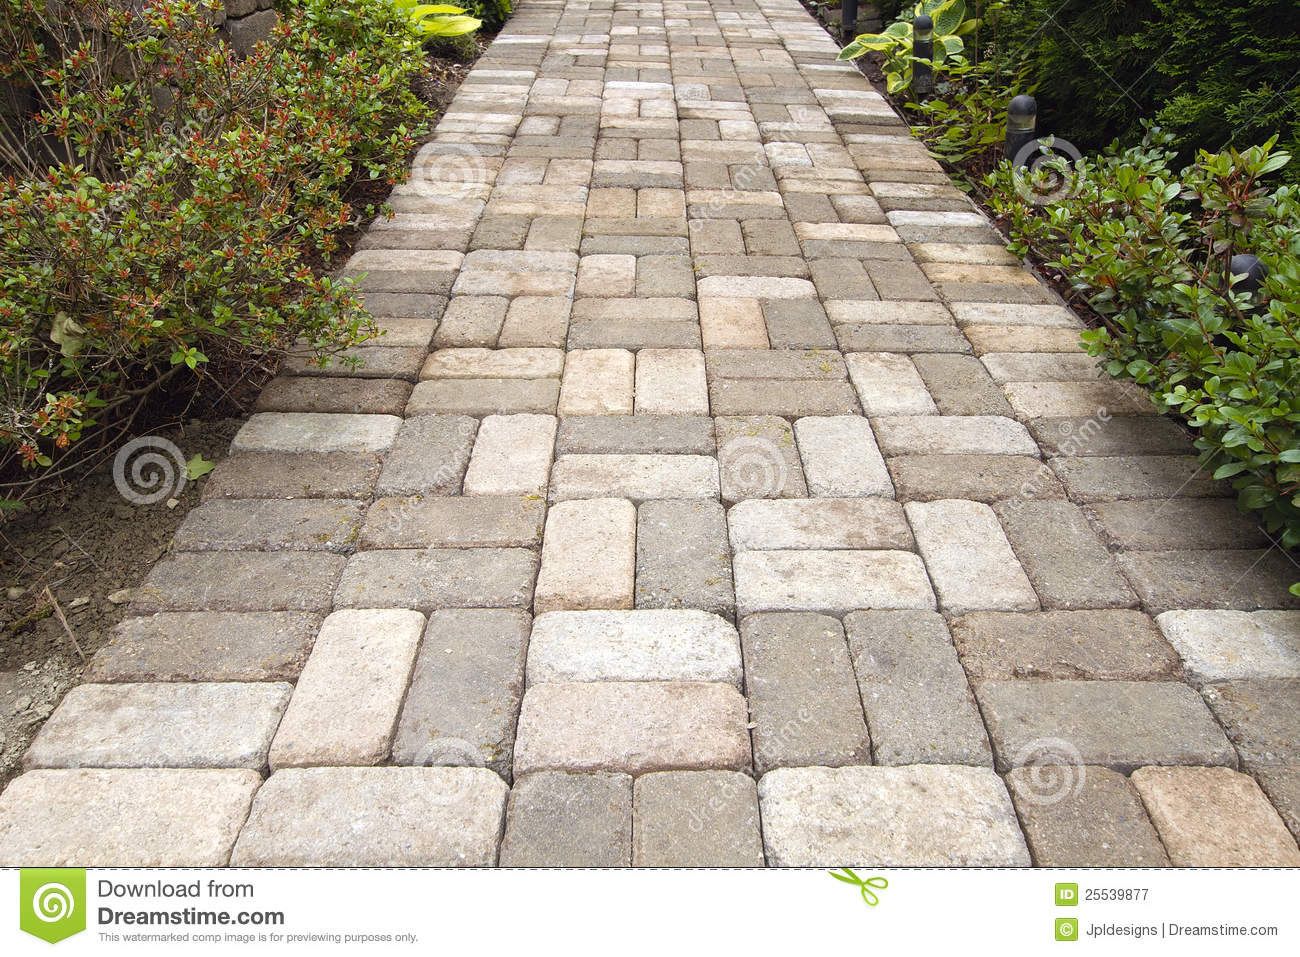 Brick Paver Walkway Designs Garden Brick Paver Path Walkway Stock Image  Image 25539877